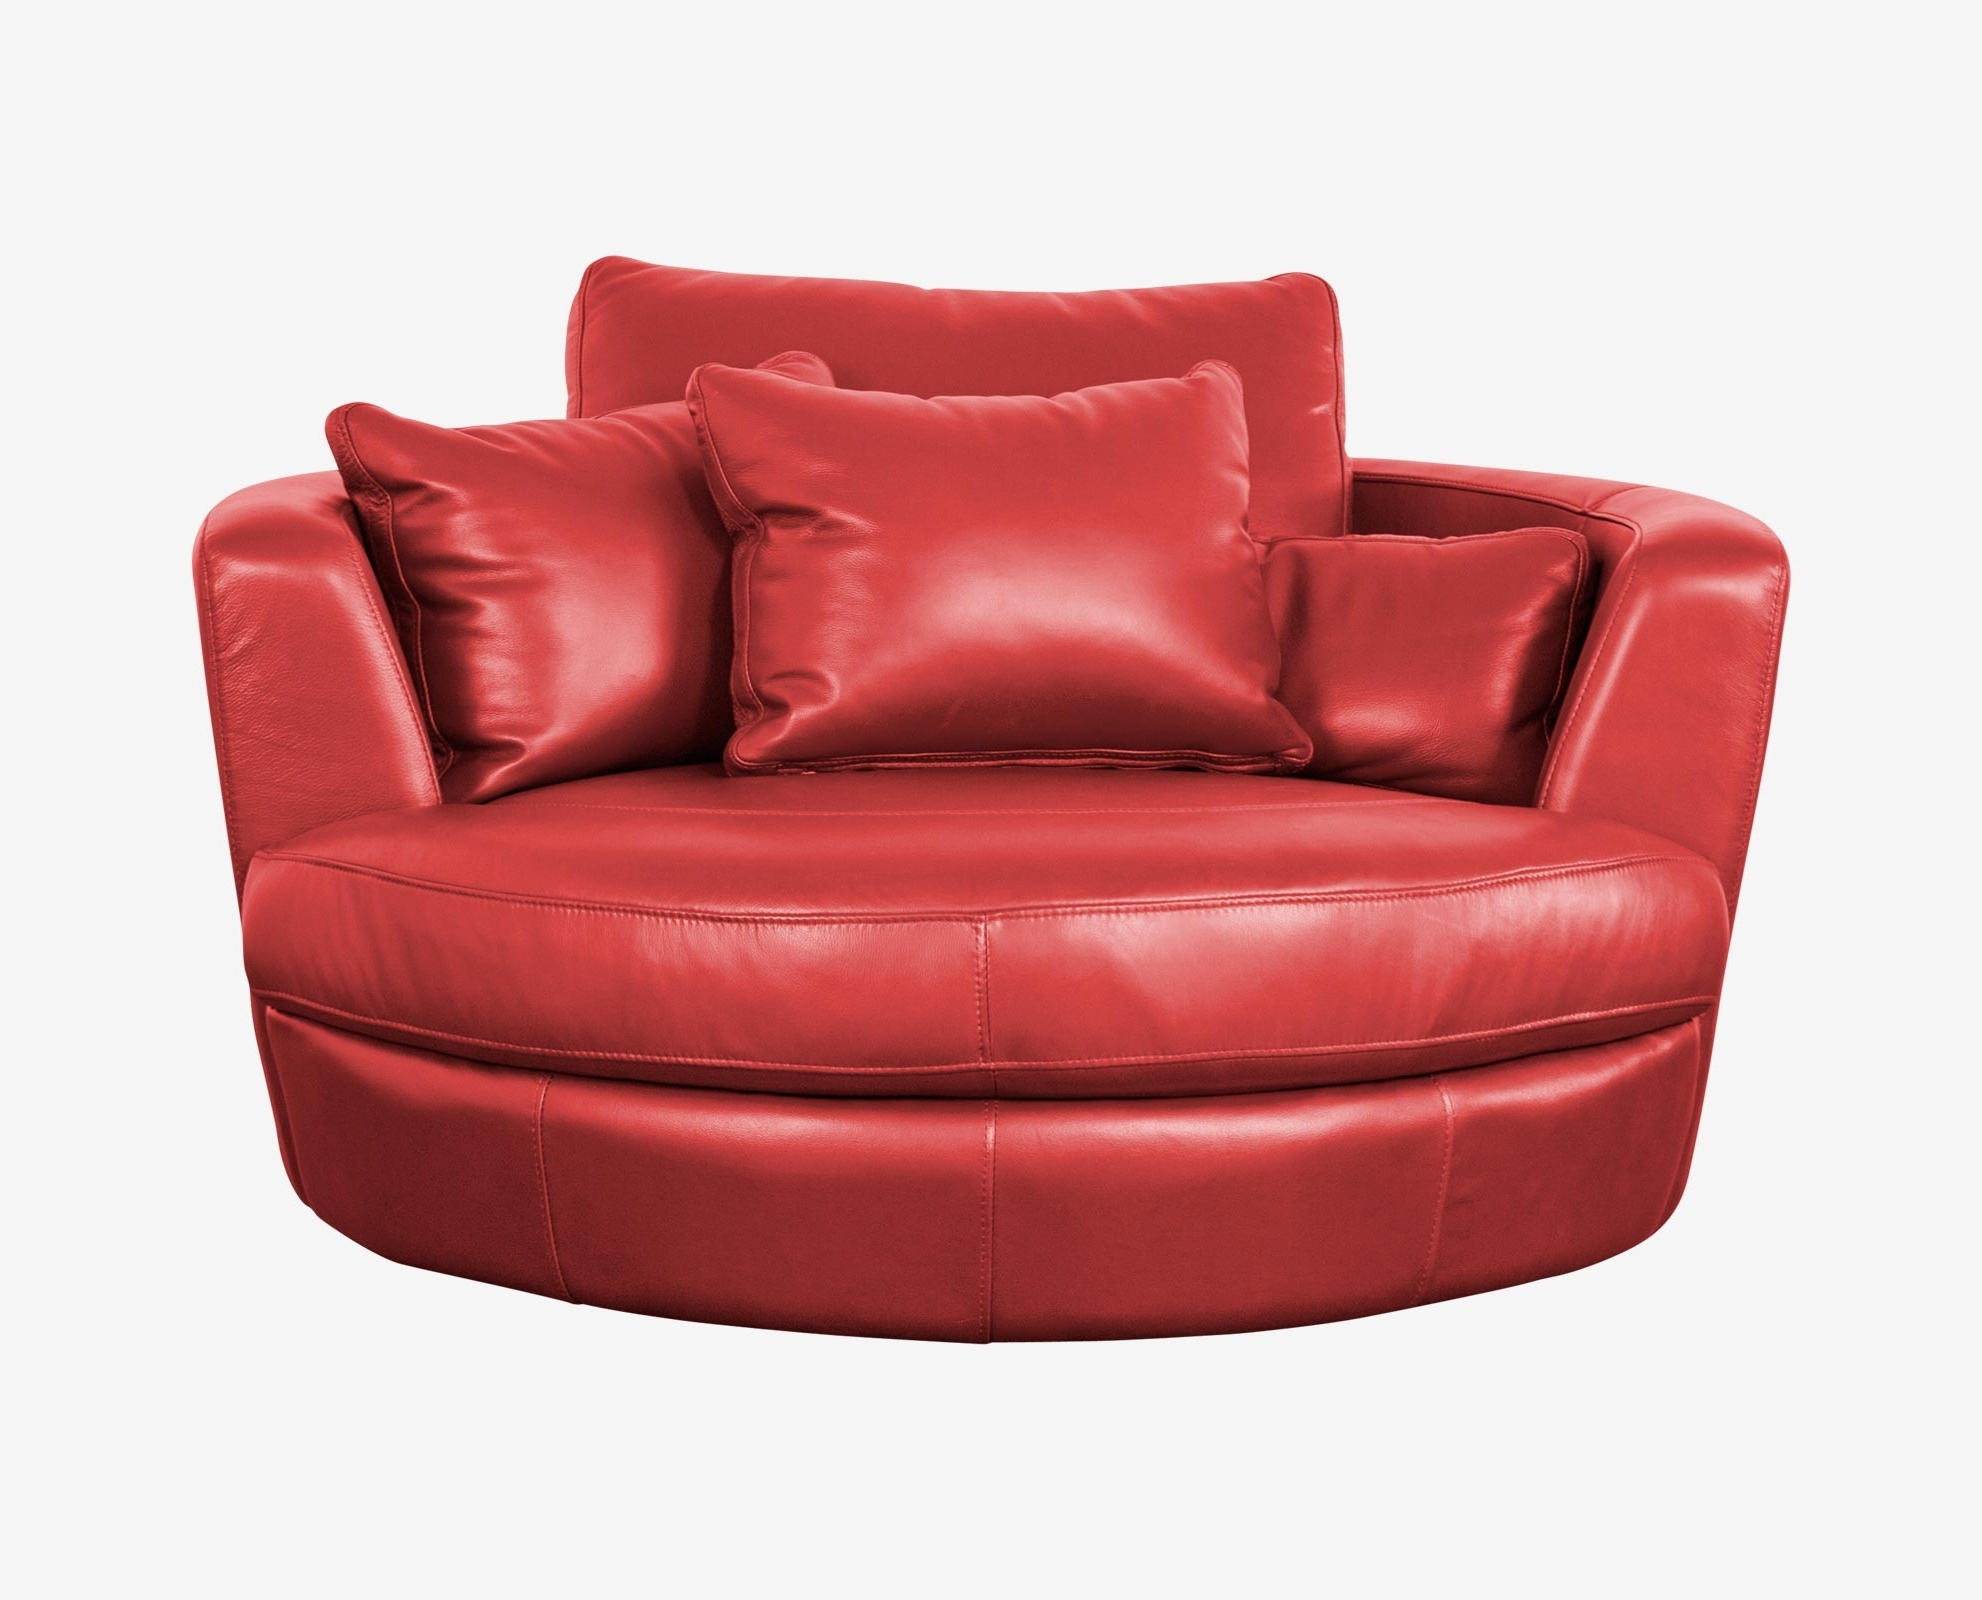 Trendy Round Swivel Sofa Chairs Throughout Round Sofa Chair (View 17 of 20)